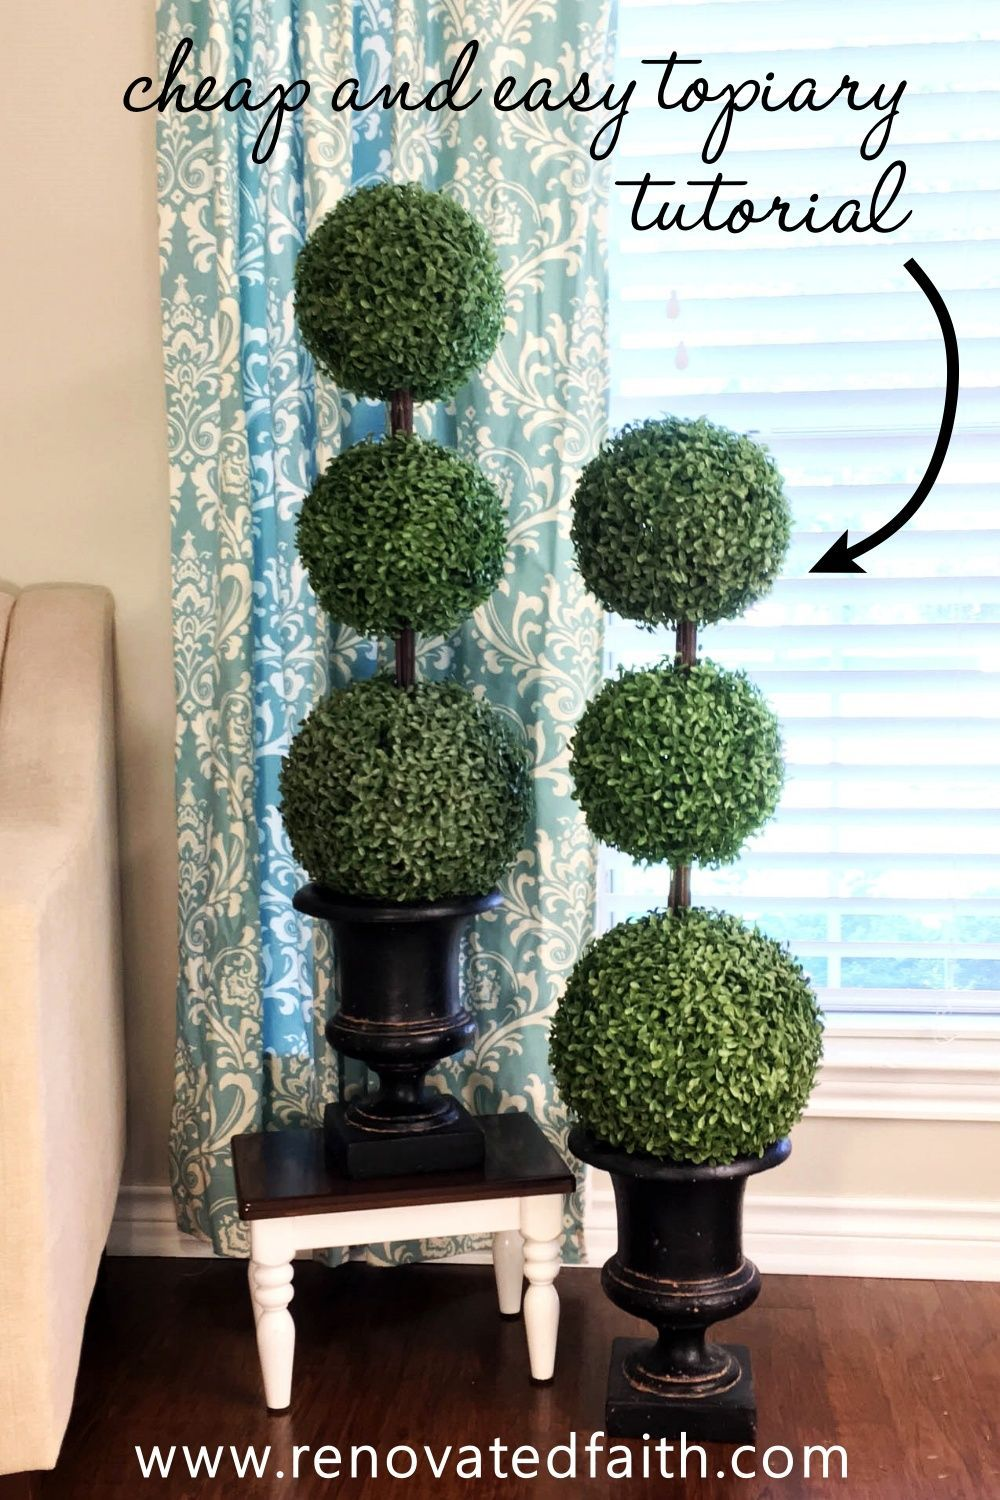 The Easiest Diy Topiary Trees On A Budget Topiary Decorating Ideas In 2020 Outdoor Topiary Topiary Diy Topiary Trees